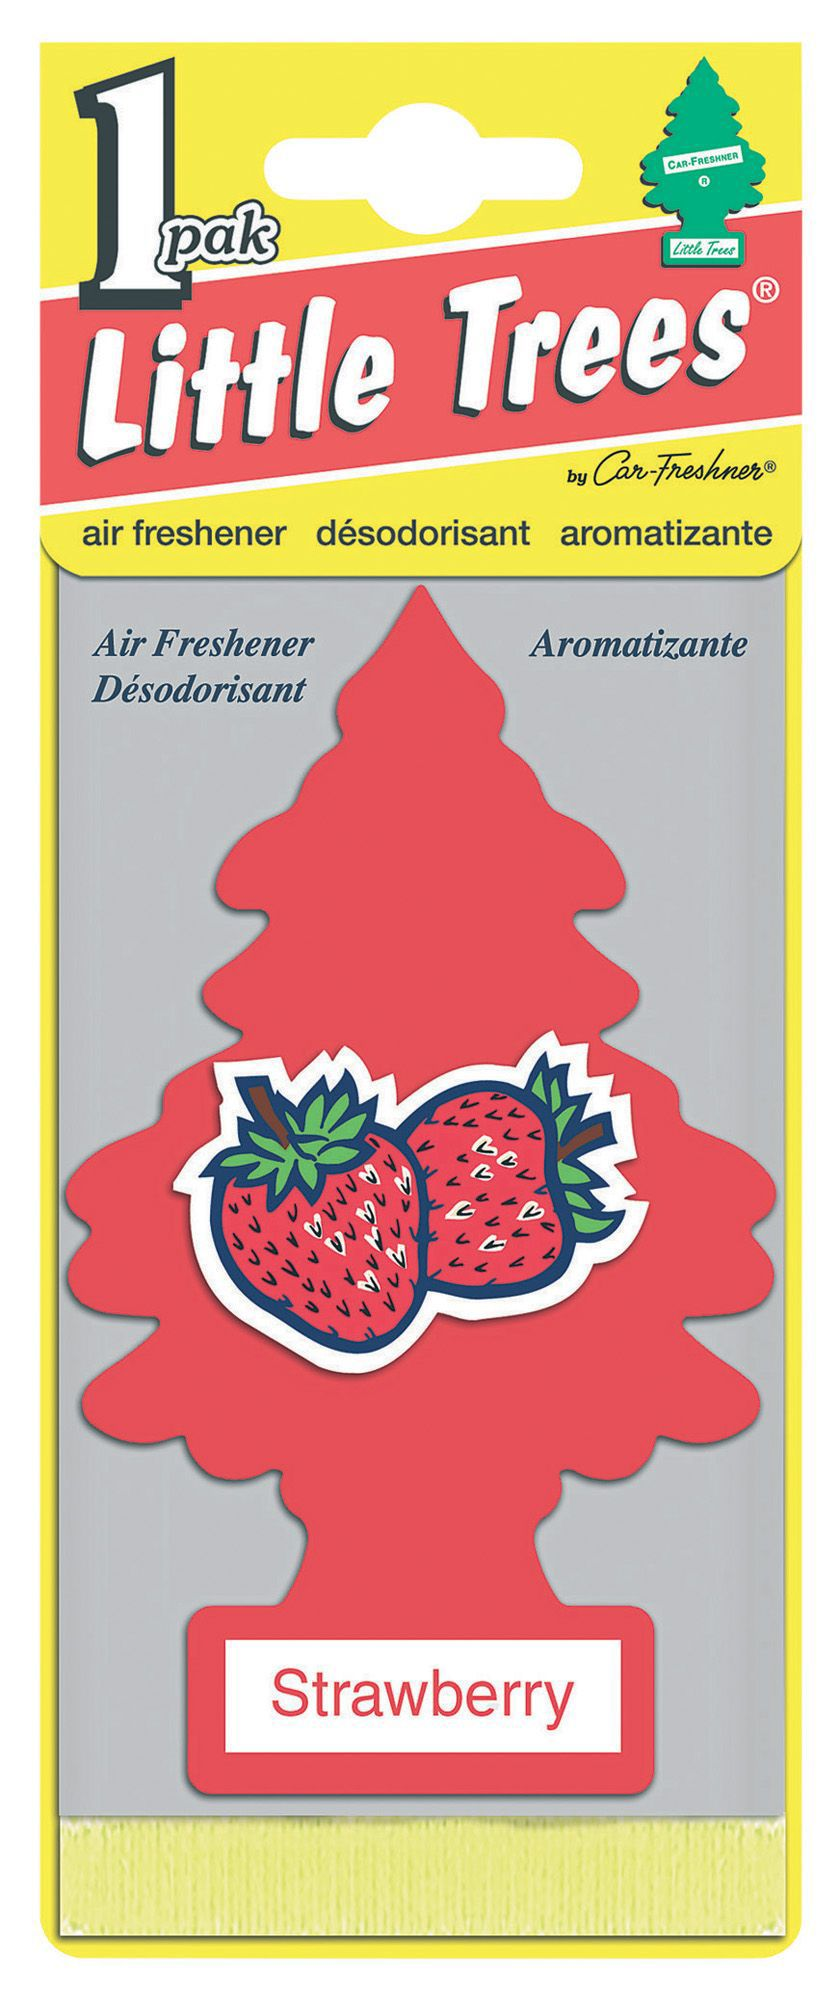 how to use little trees air freshener